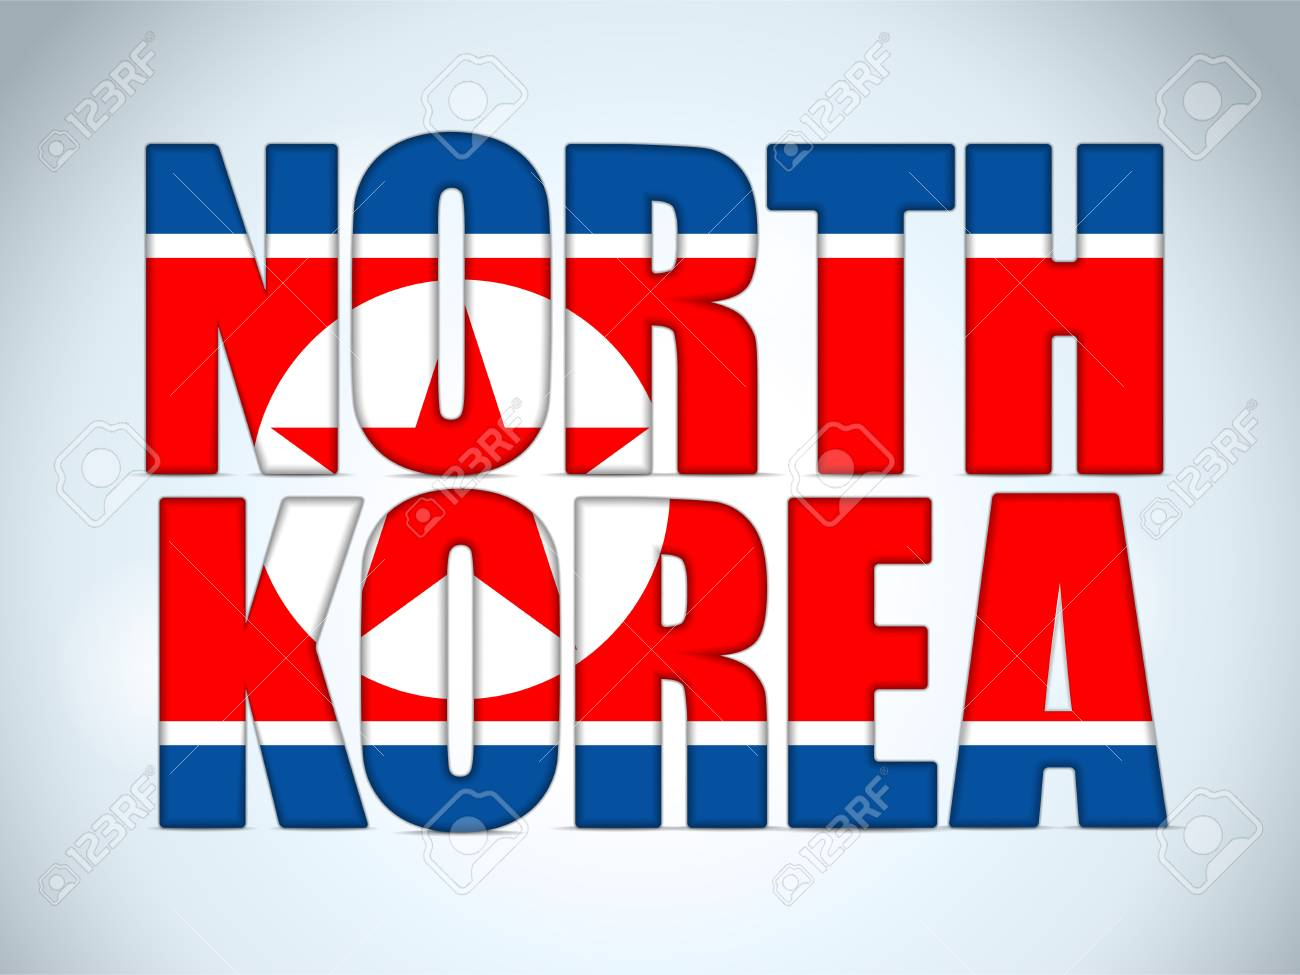 North Korea Country Letter Background Stock Vector - 18939973